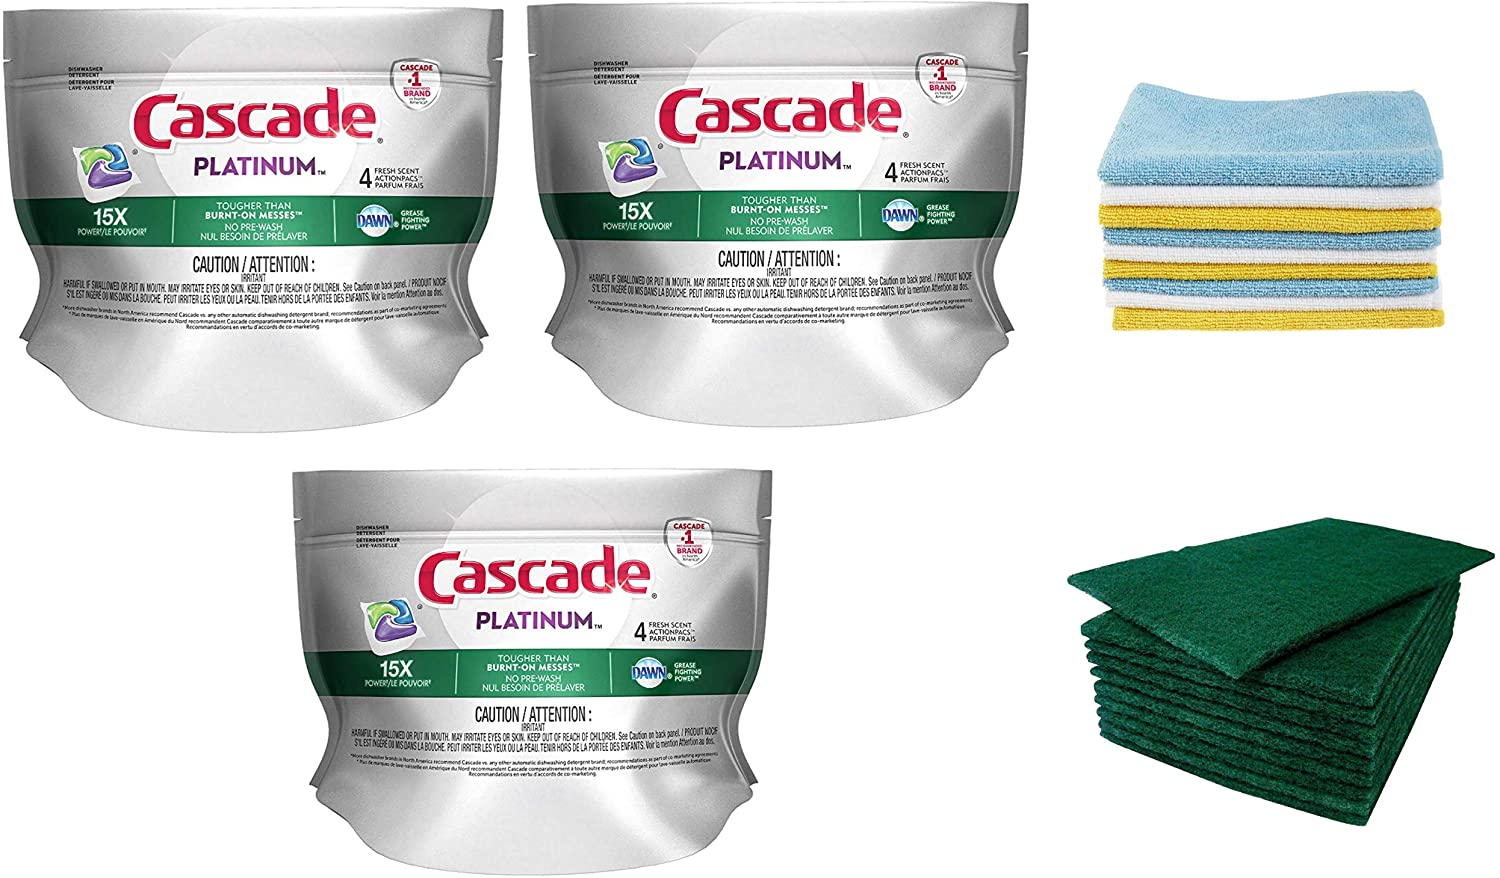 Cascade Platinum ActionPacs Dishwasher Detergent, Fresh 3 Pack-12 Pods Total (Including 2 Pack Microfiber Towel Kitchen Cloths & 10 pc Scouring Pads) Dishwasher Detergent & Kitchen Cleaning Set